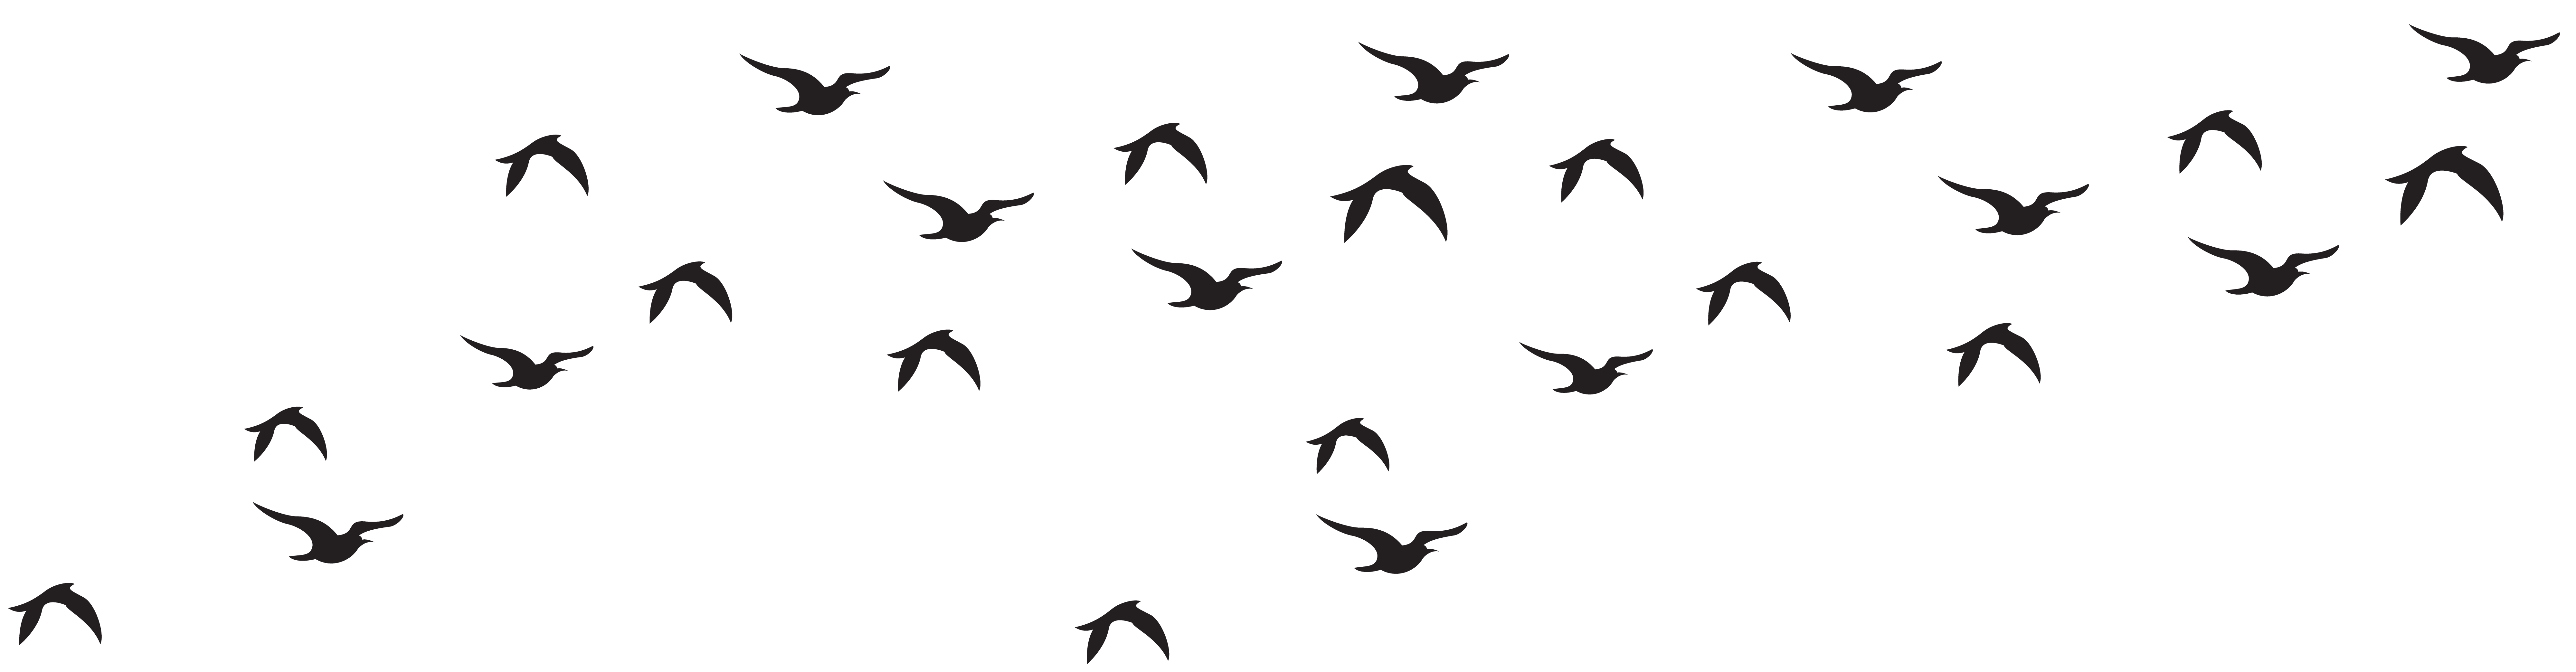 Flock of birds png. Silhouette clip art image